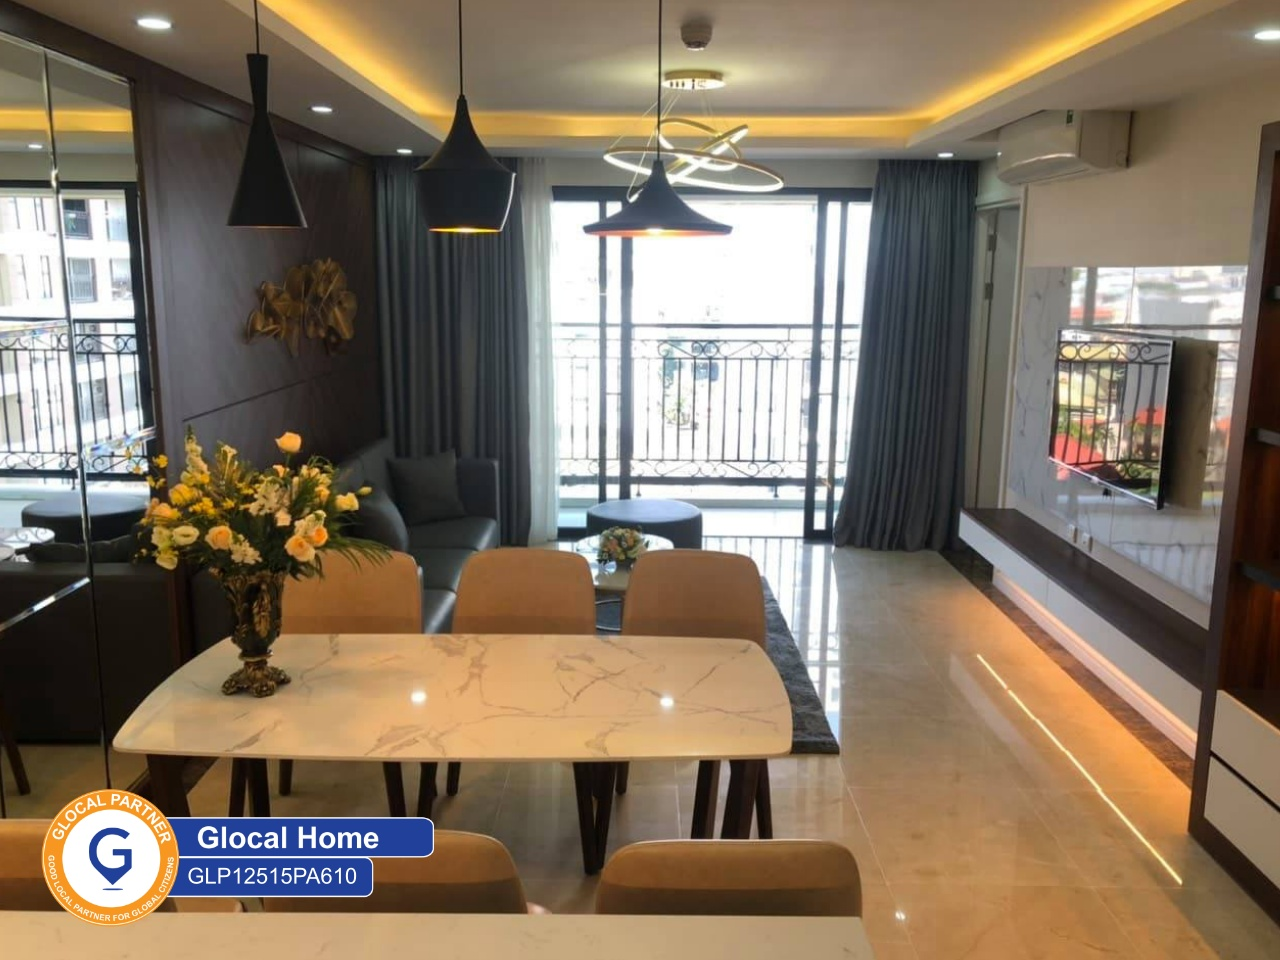 3 bedroom apartment with balcony and fully furnished in L'e roi de Solei Xuan Dieu